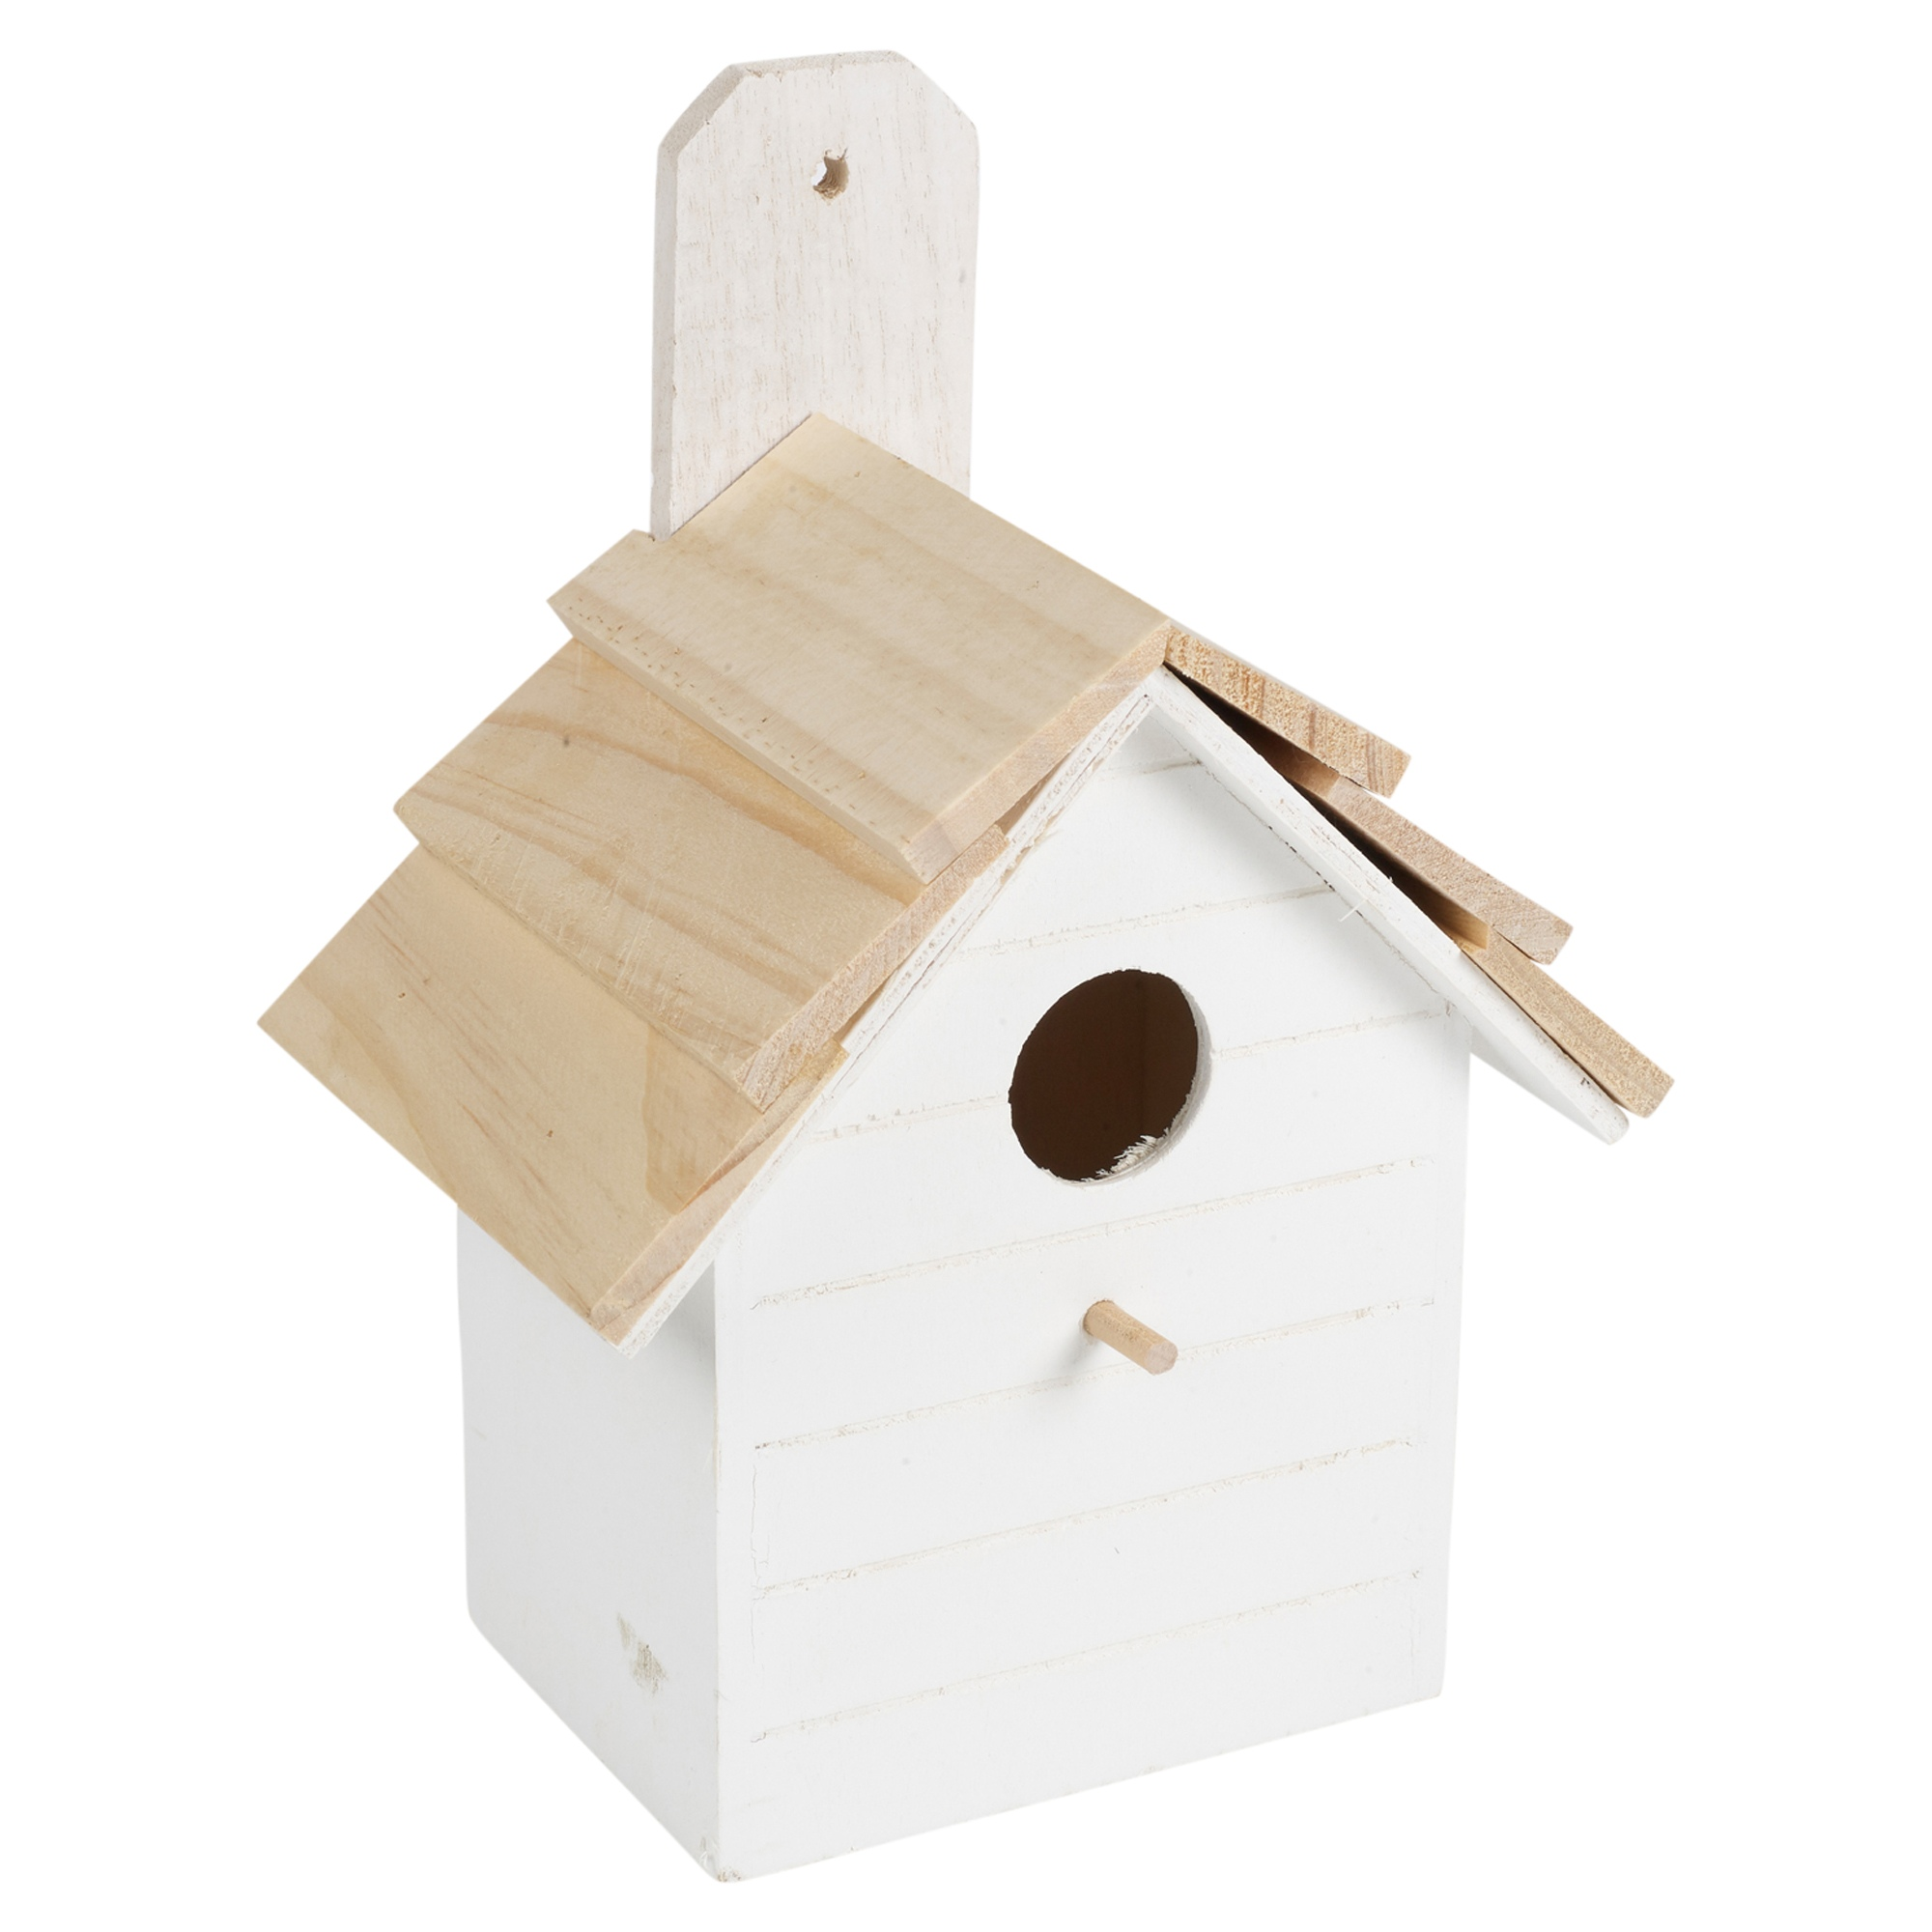 2 X WOODEN NESTING NEST BOX BIRD HOUSE SMALL BIRDS BLUE TIT ROBIN SPARROW